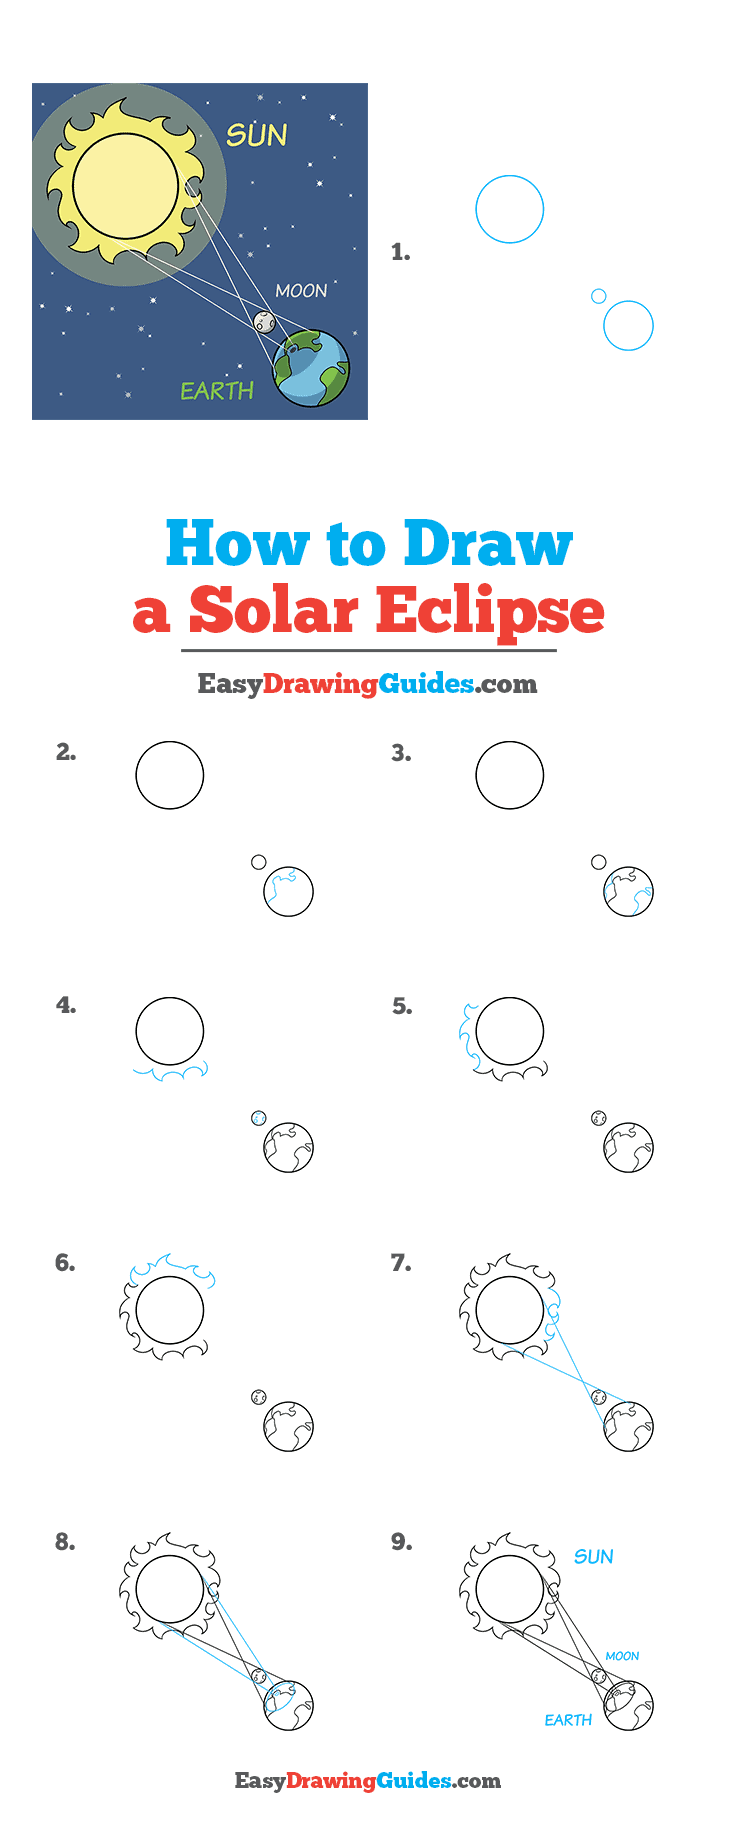 How to Draw a Solar Eclipse Step by Step Tutorial Image